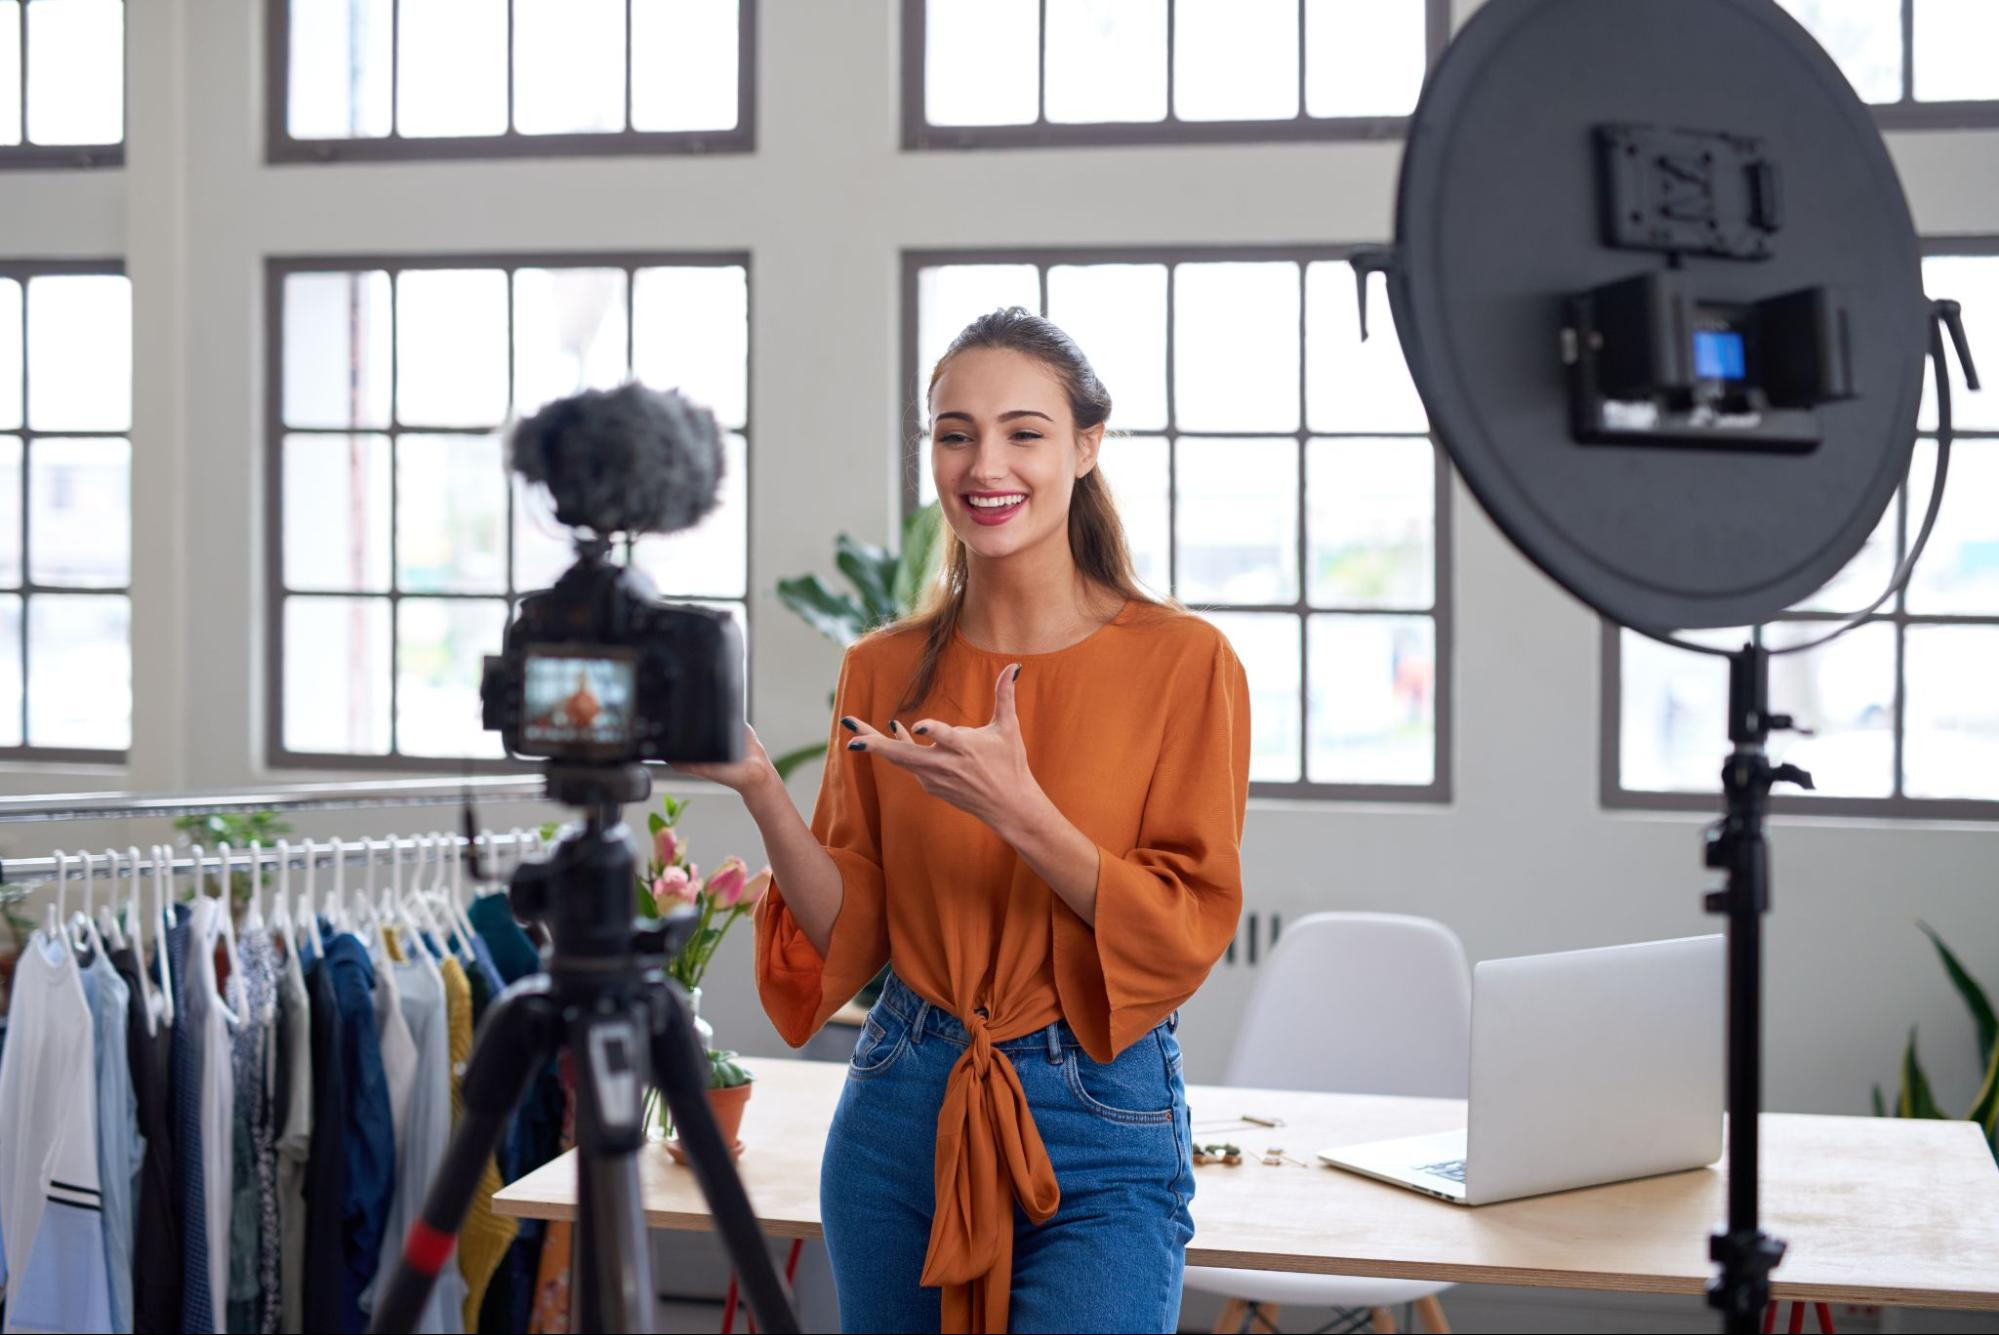 photo of woman livestreaming in modern apartment showcasing trendy clothes